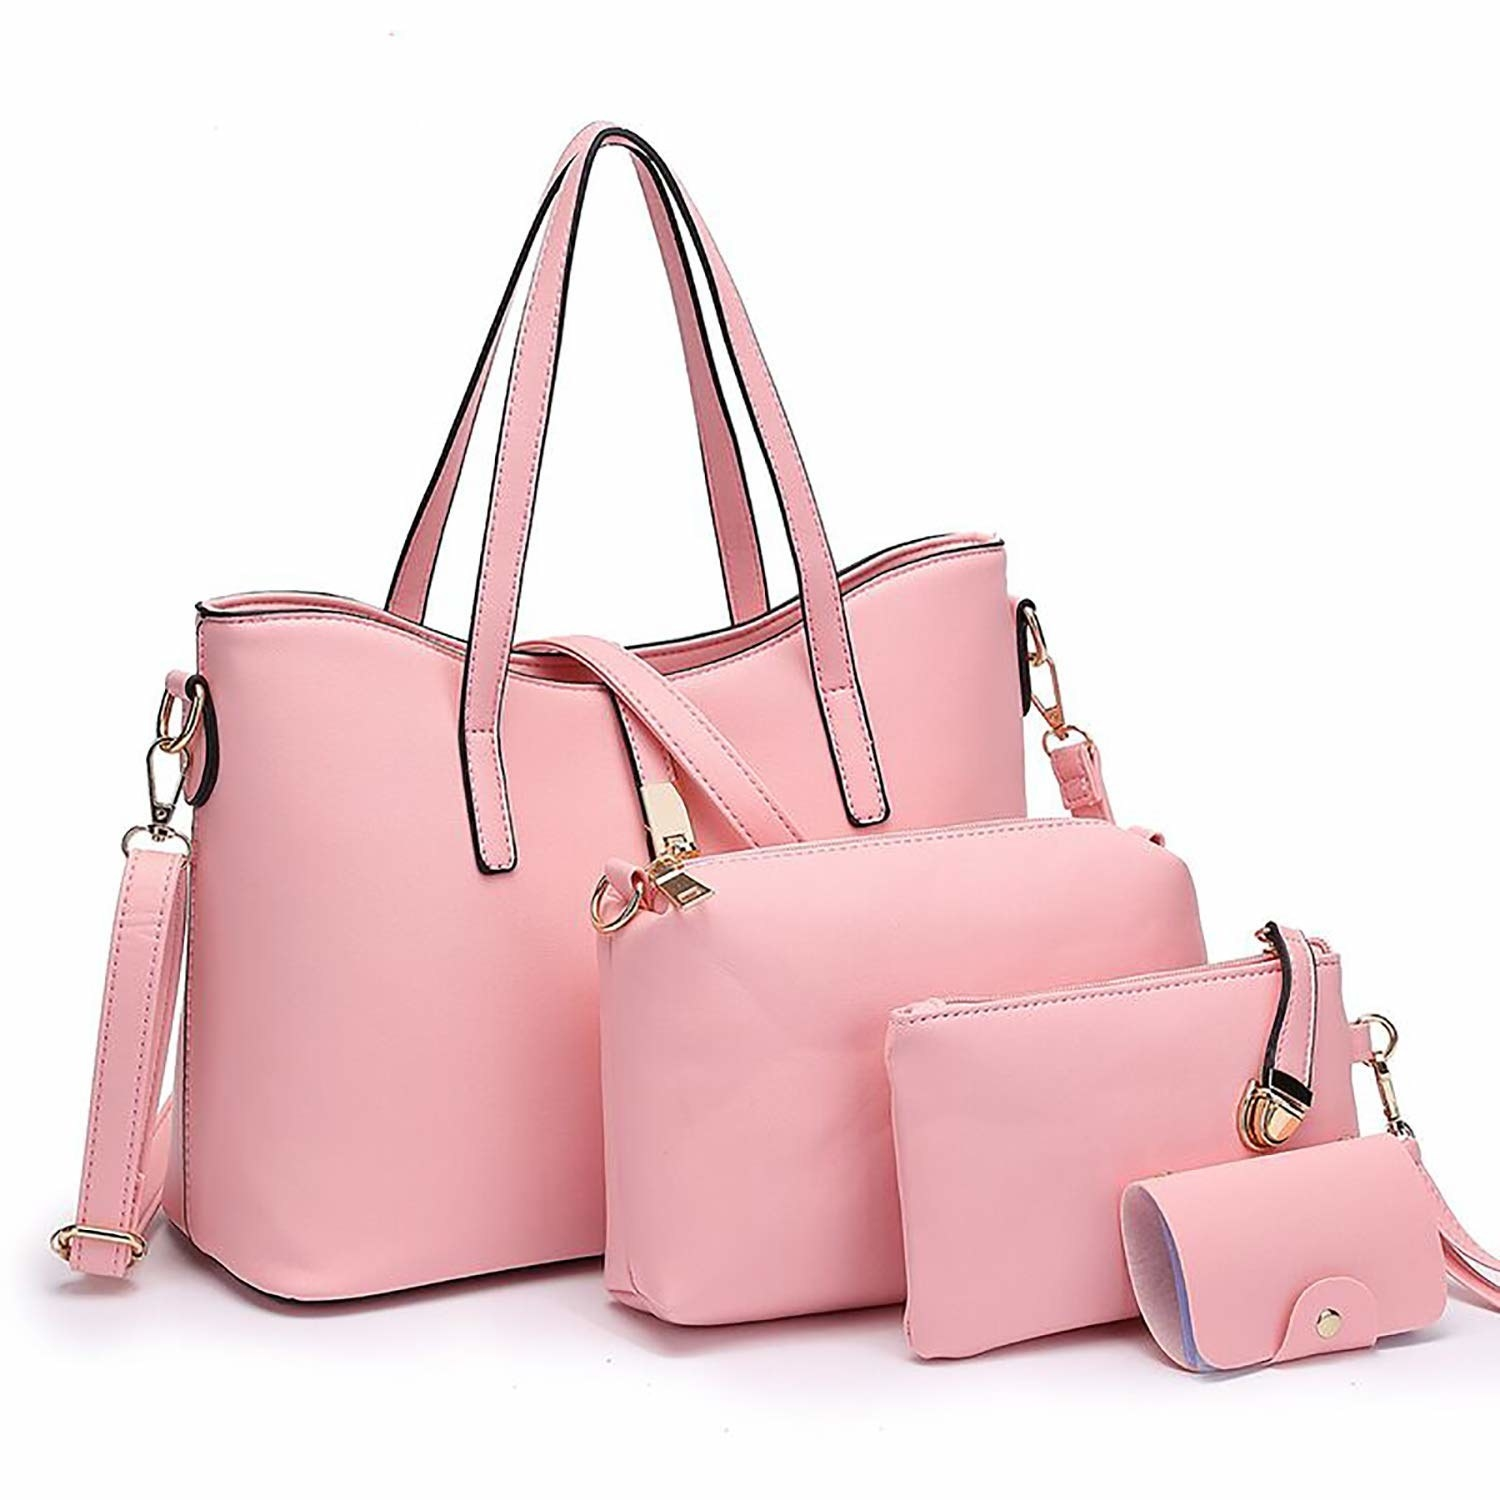 b4e1a68dd6e5 25 Stylish Bags You Can Get For  30 Or Less